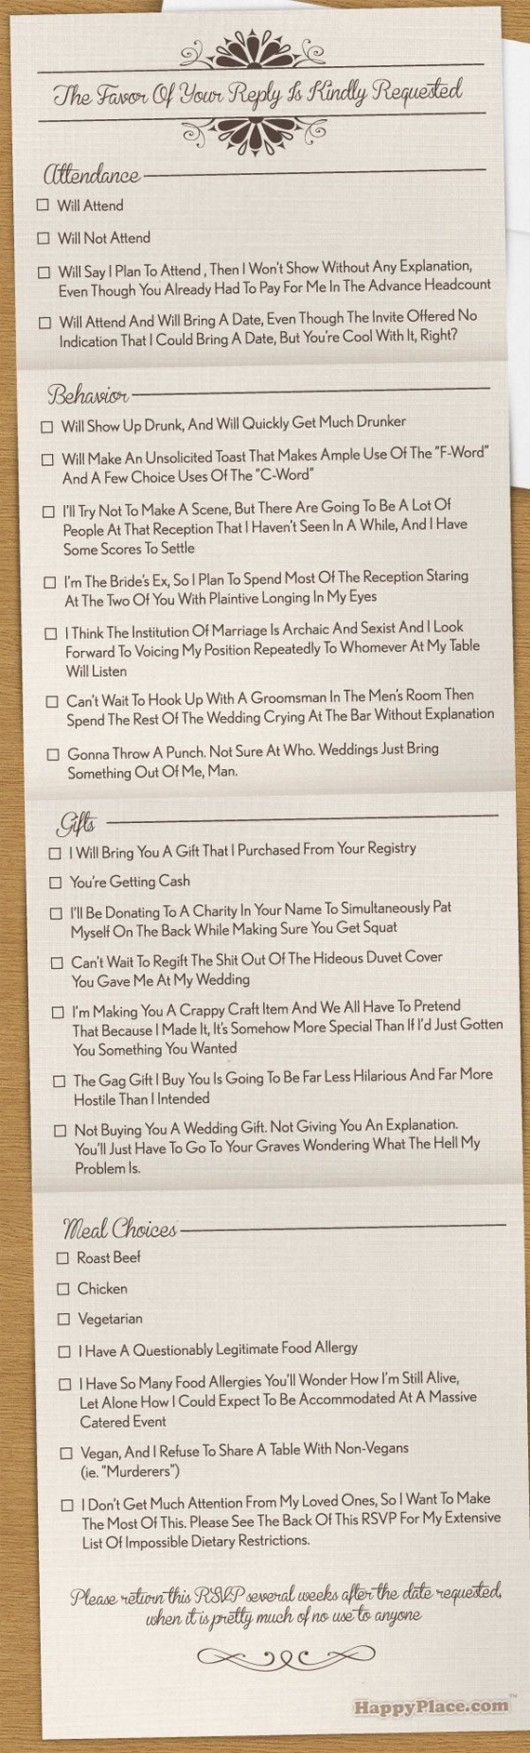 20 Ideas for Funny Wedding Invitations to Take the Stuffiness Out of ...